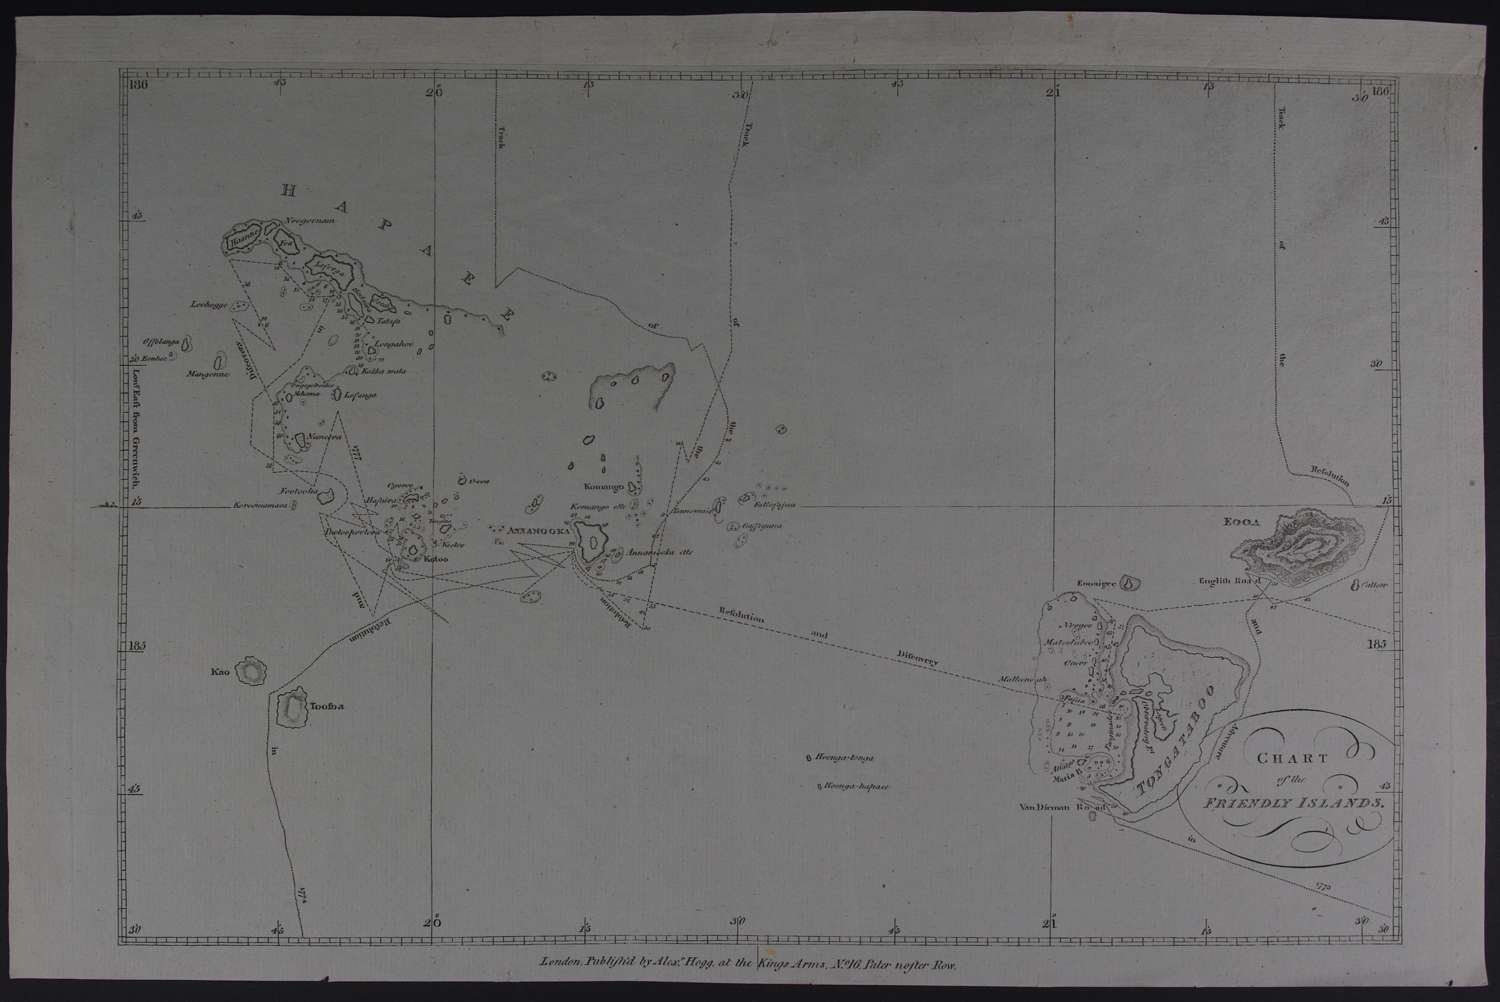 Chart of the Friendly Islands by ((Capt Cook) Alexander Hogg